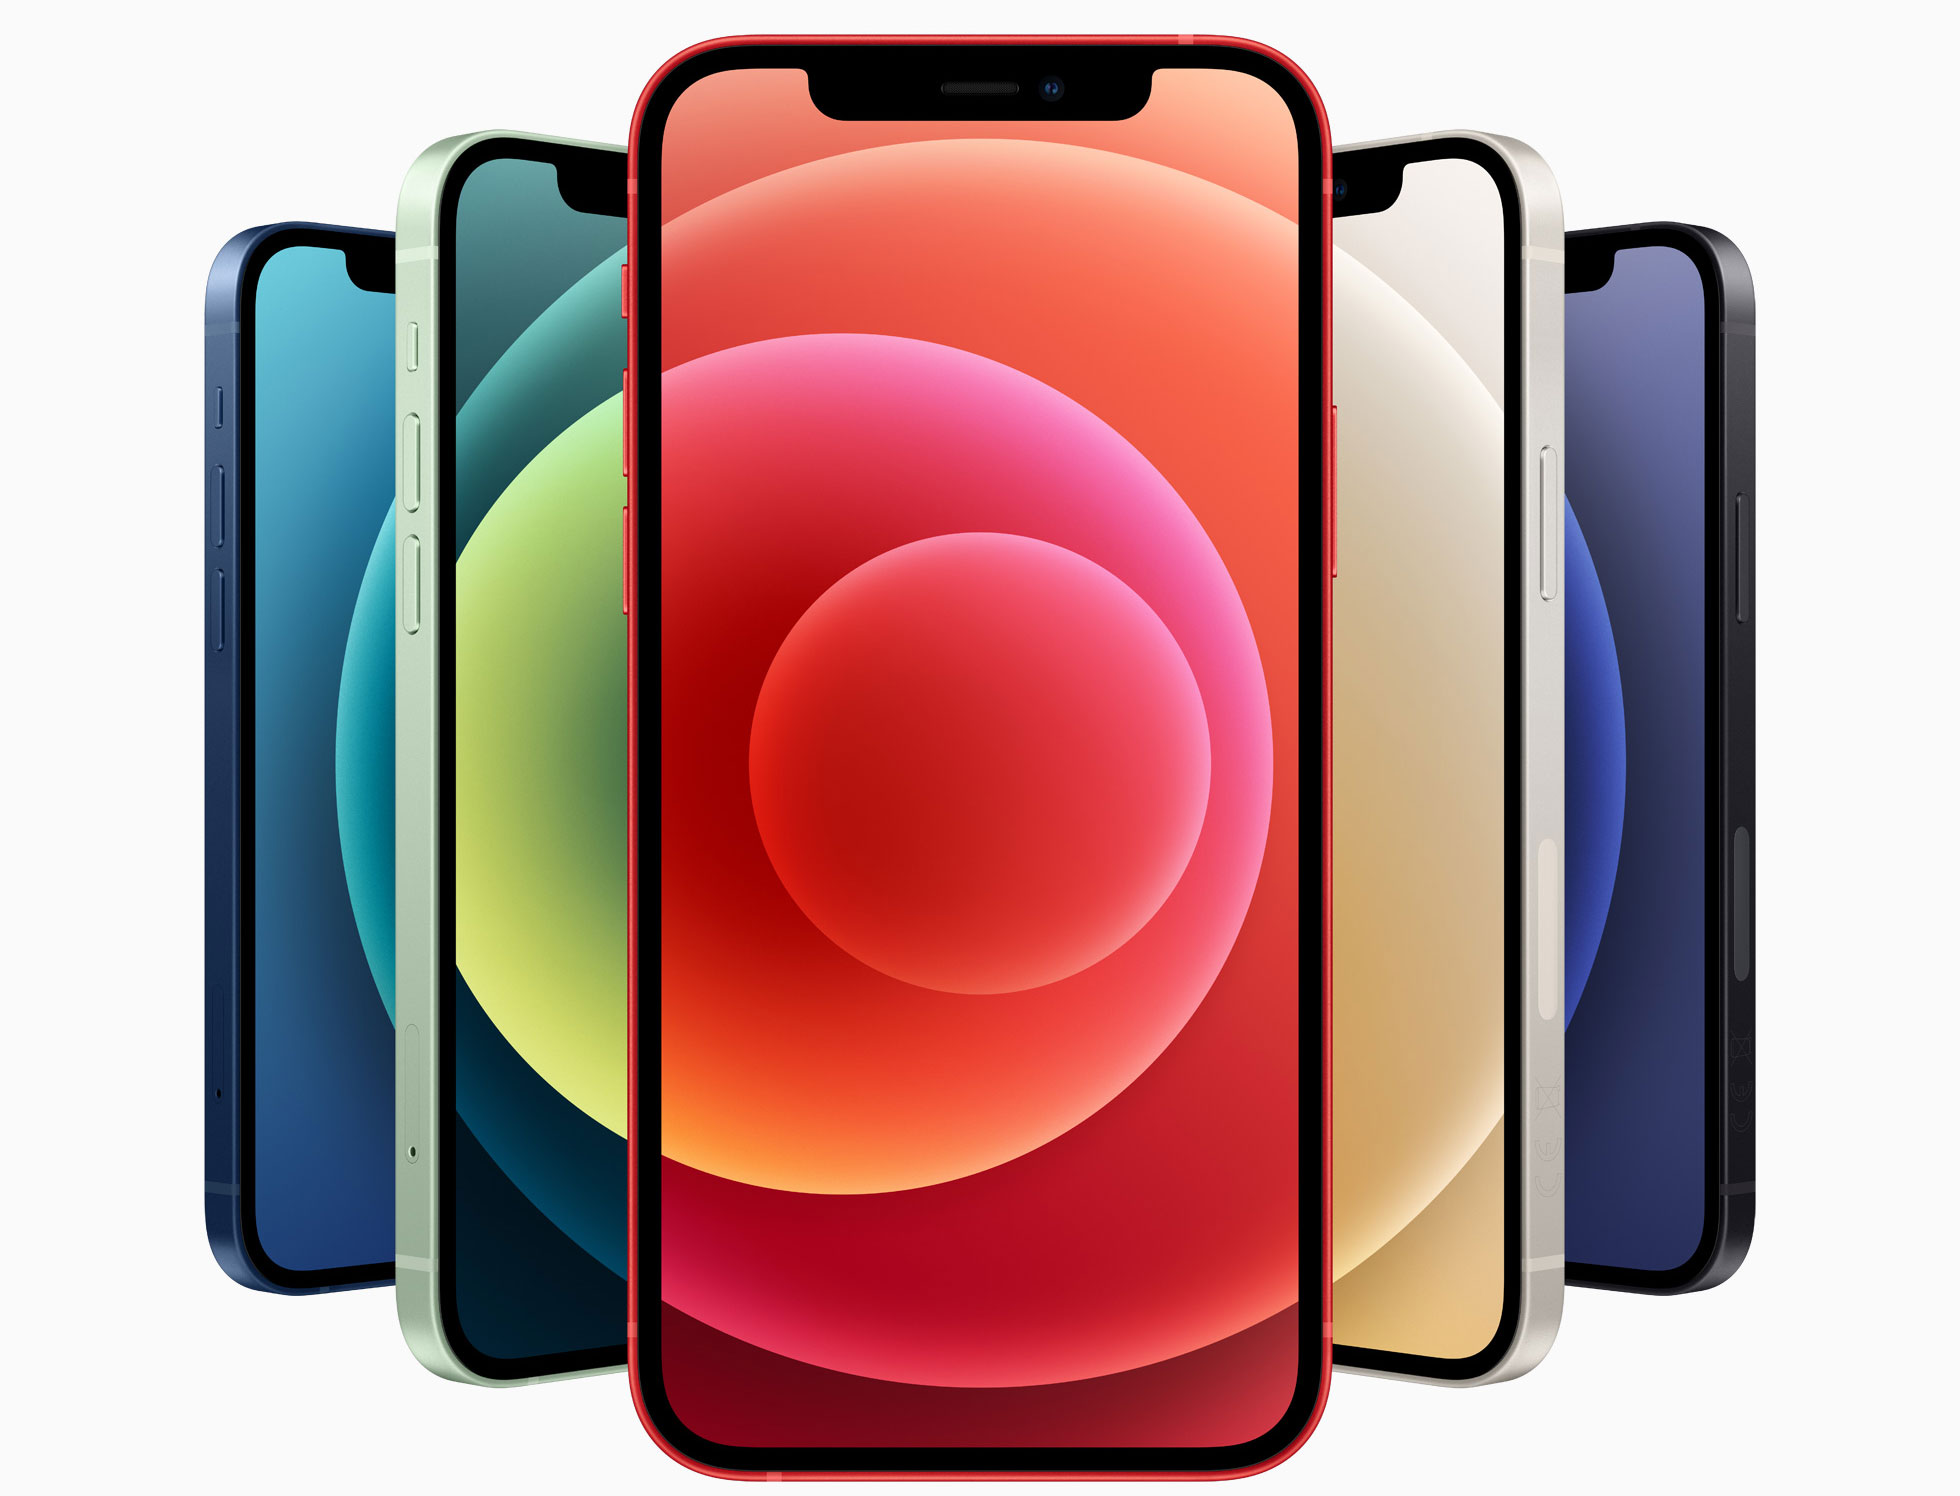 Diseño del iPhone 12